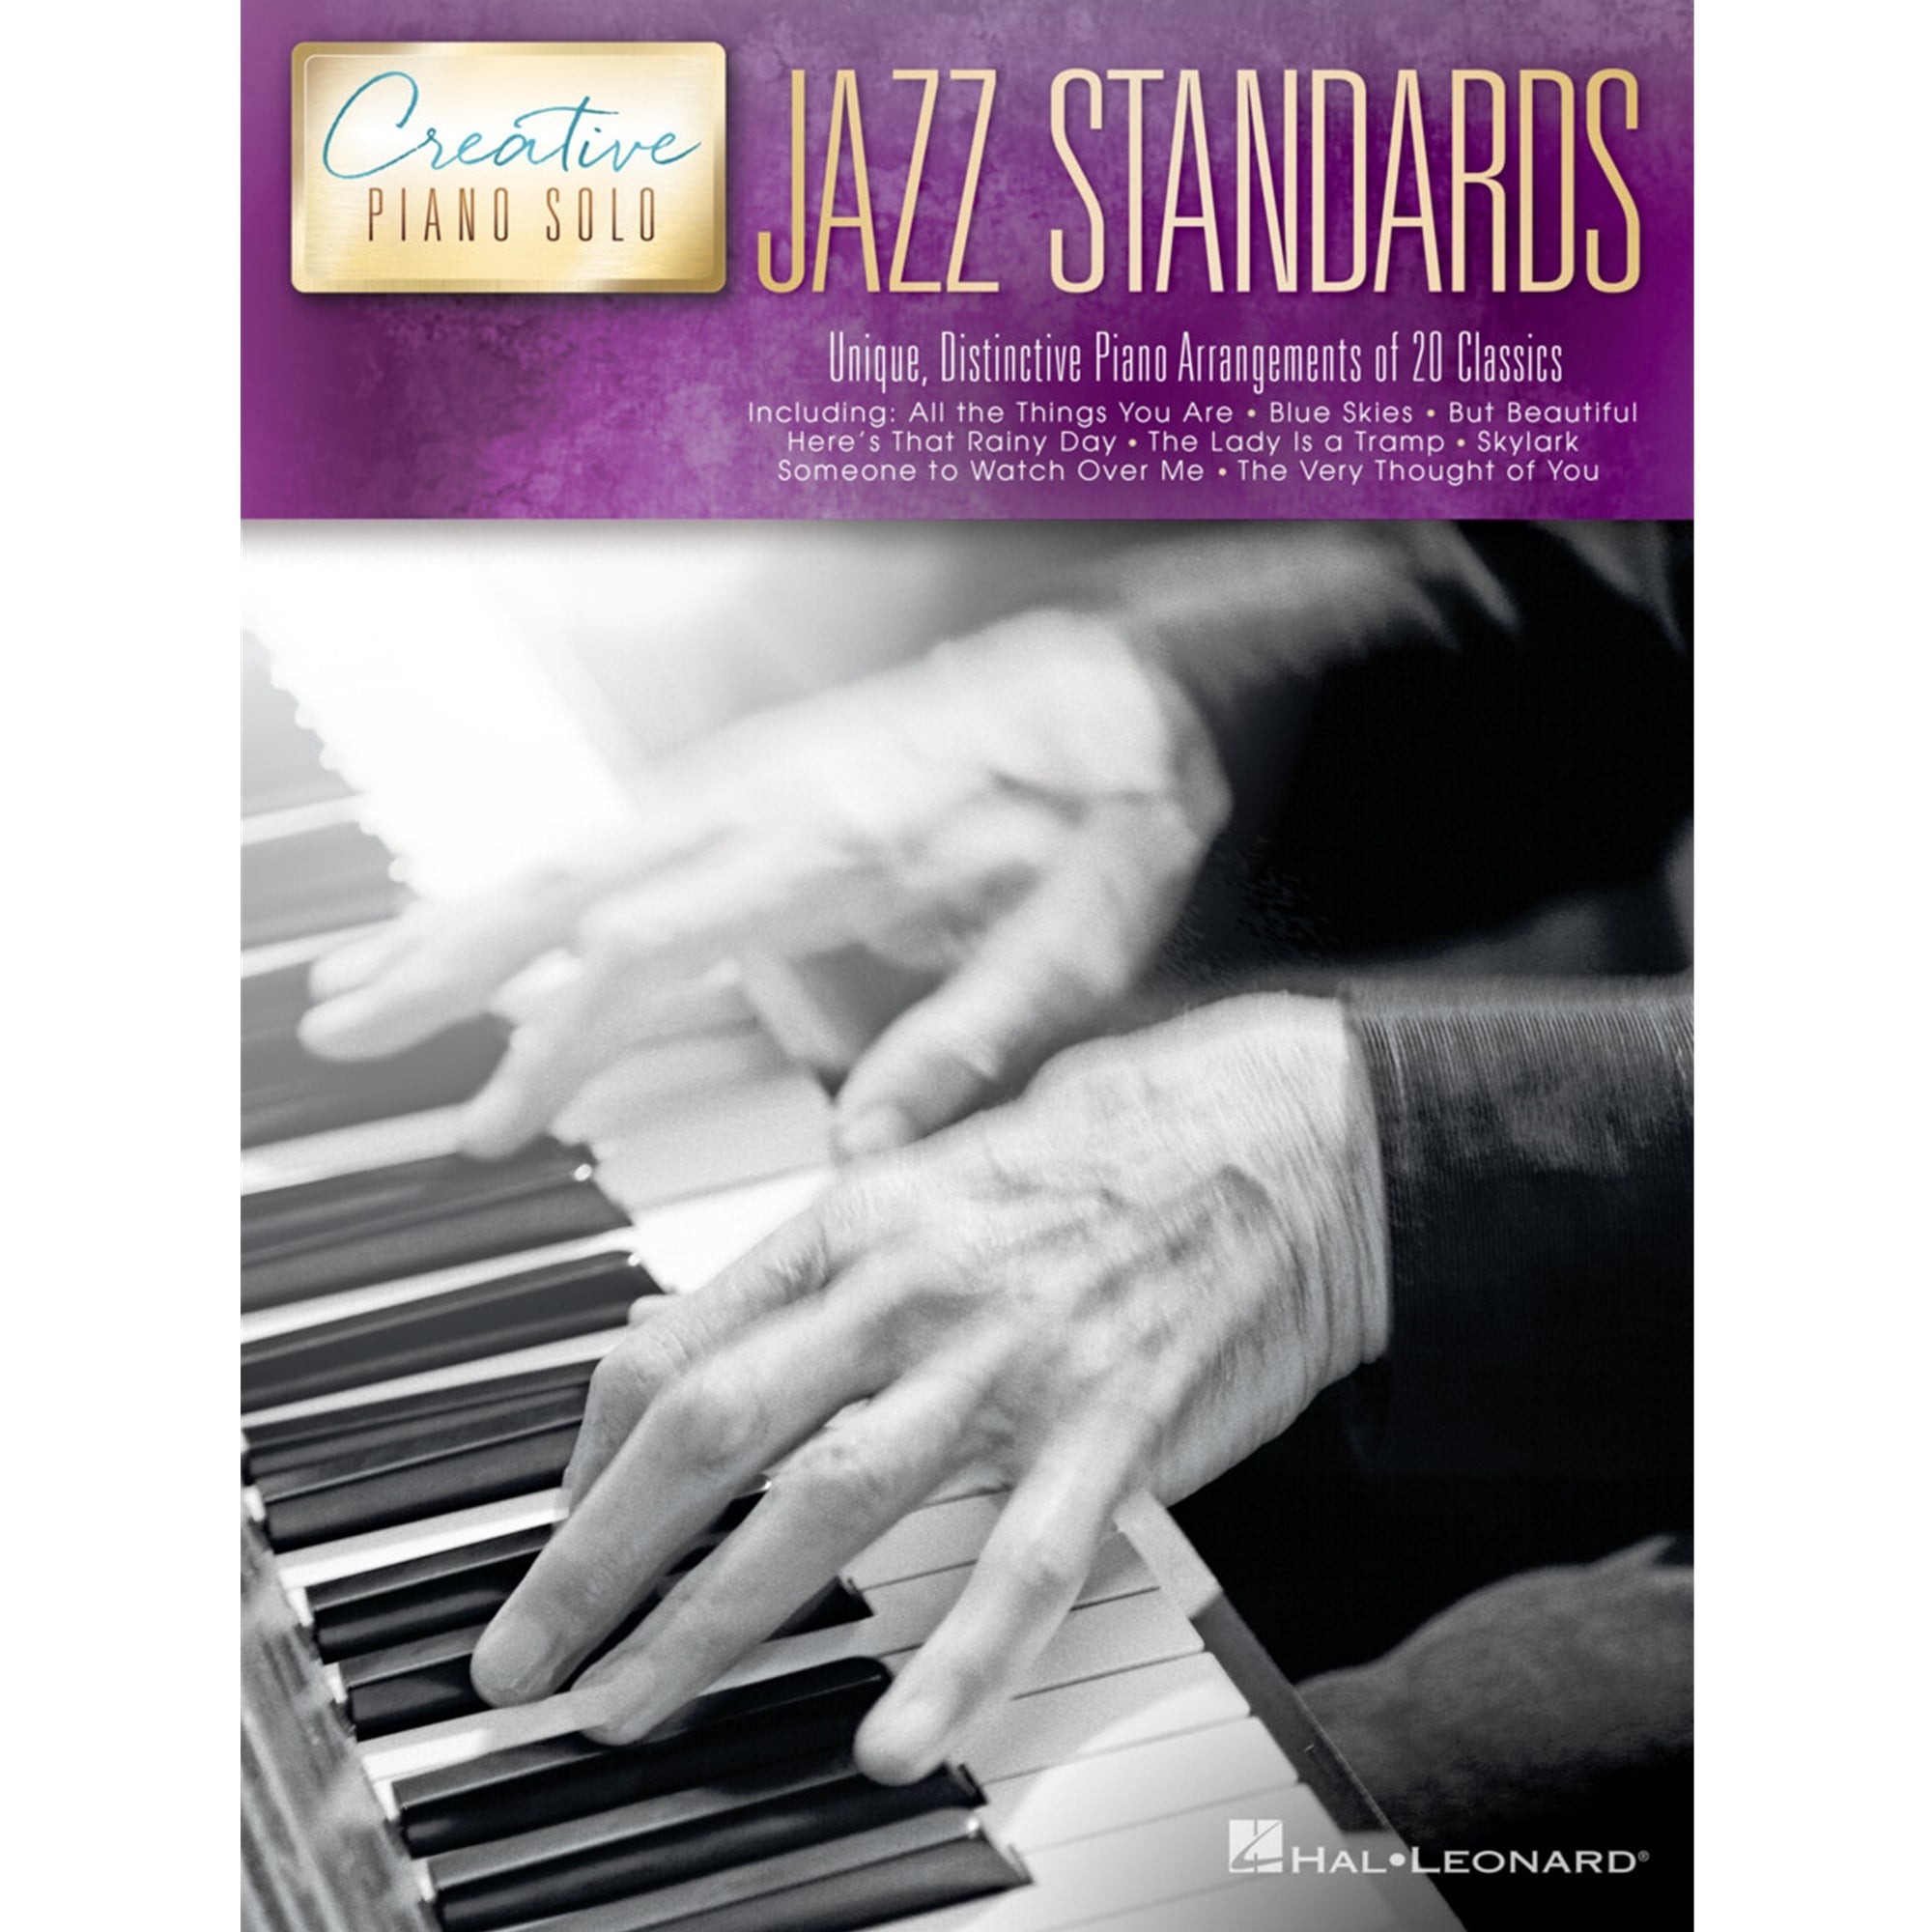 HAL LEONARD 283317 Jazz Standards - Creative Piano Solo